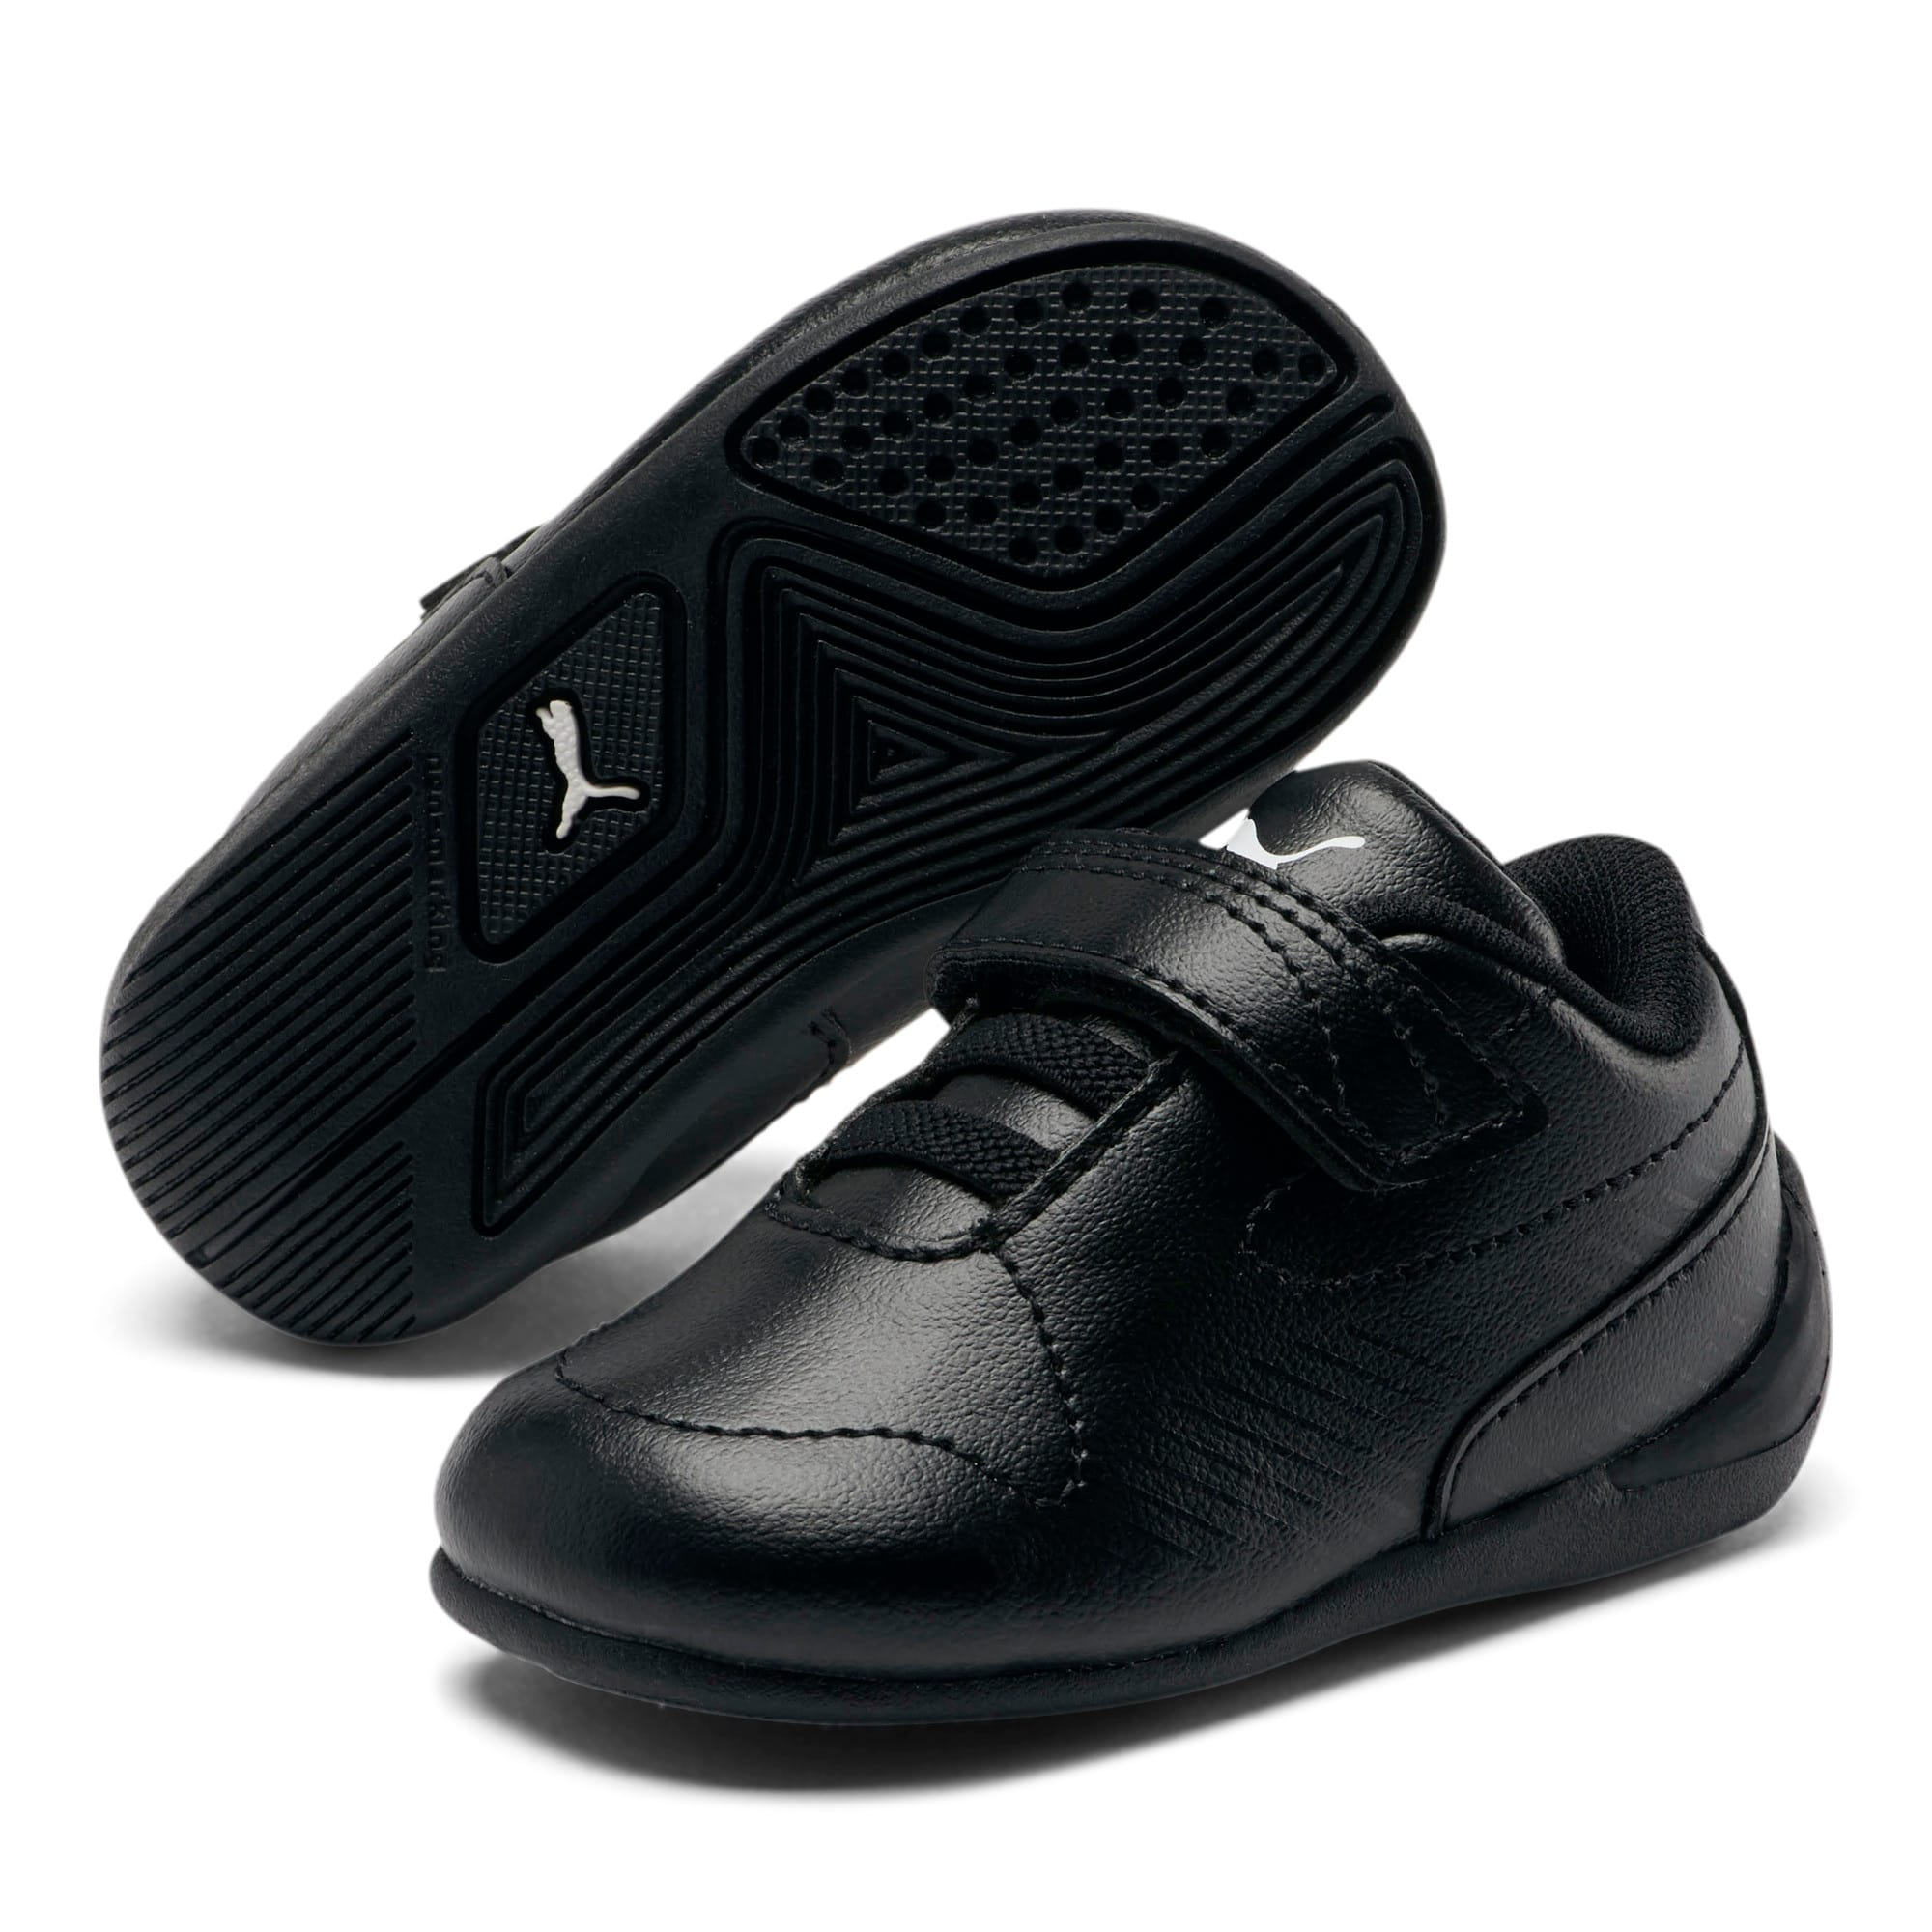 Thumbnail 2 of Drift Cat 7S Ultra Toddler Shoes, Puma Black-Puma Black, medium